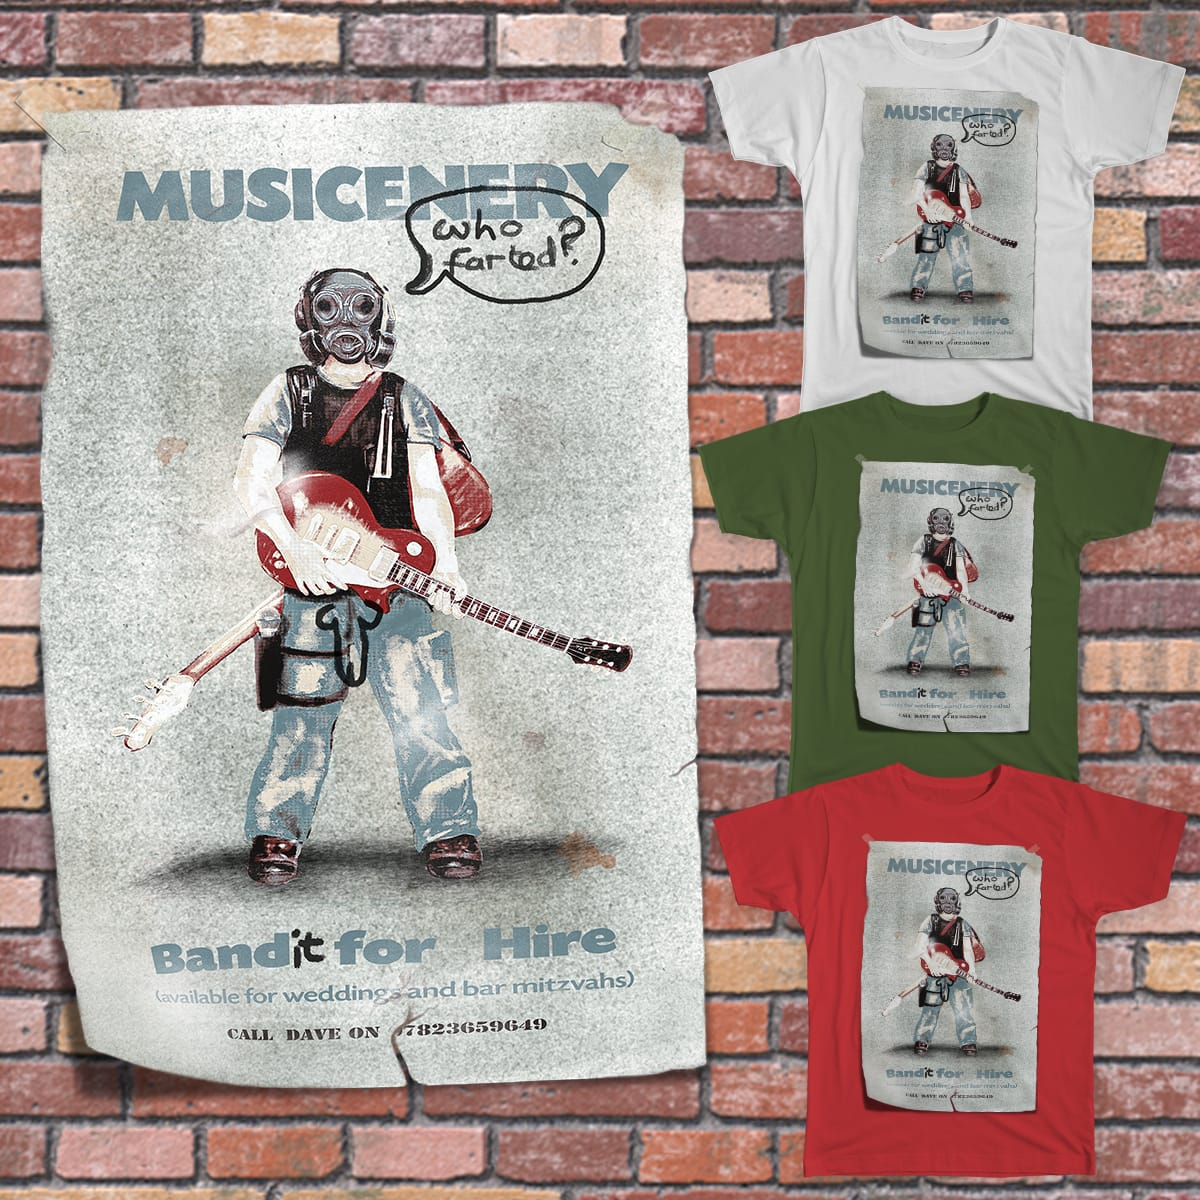 Musicenery - Band for Hire by TonyAlanCooper on Threadless